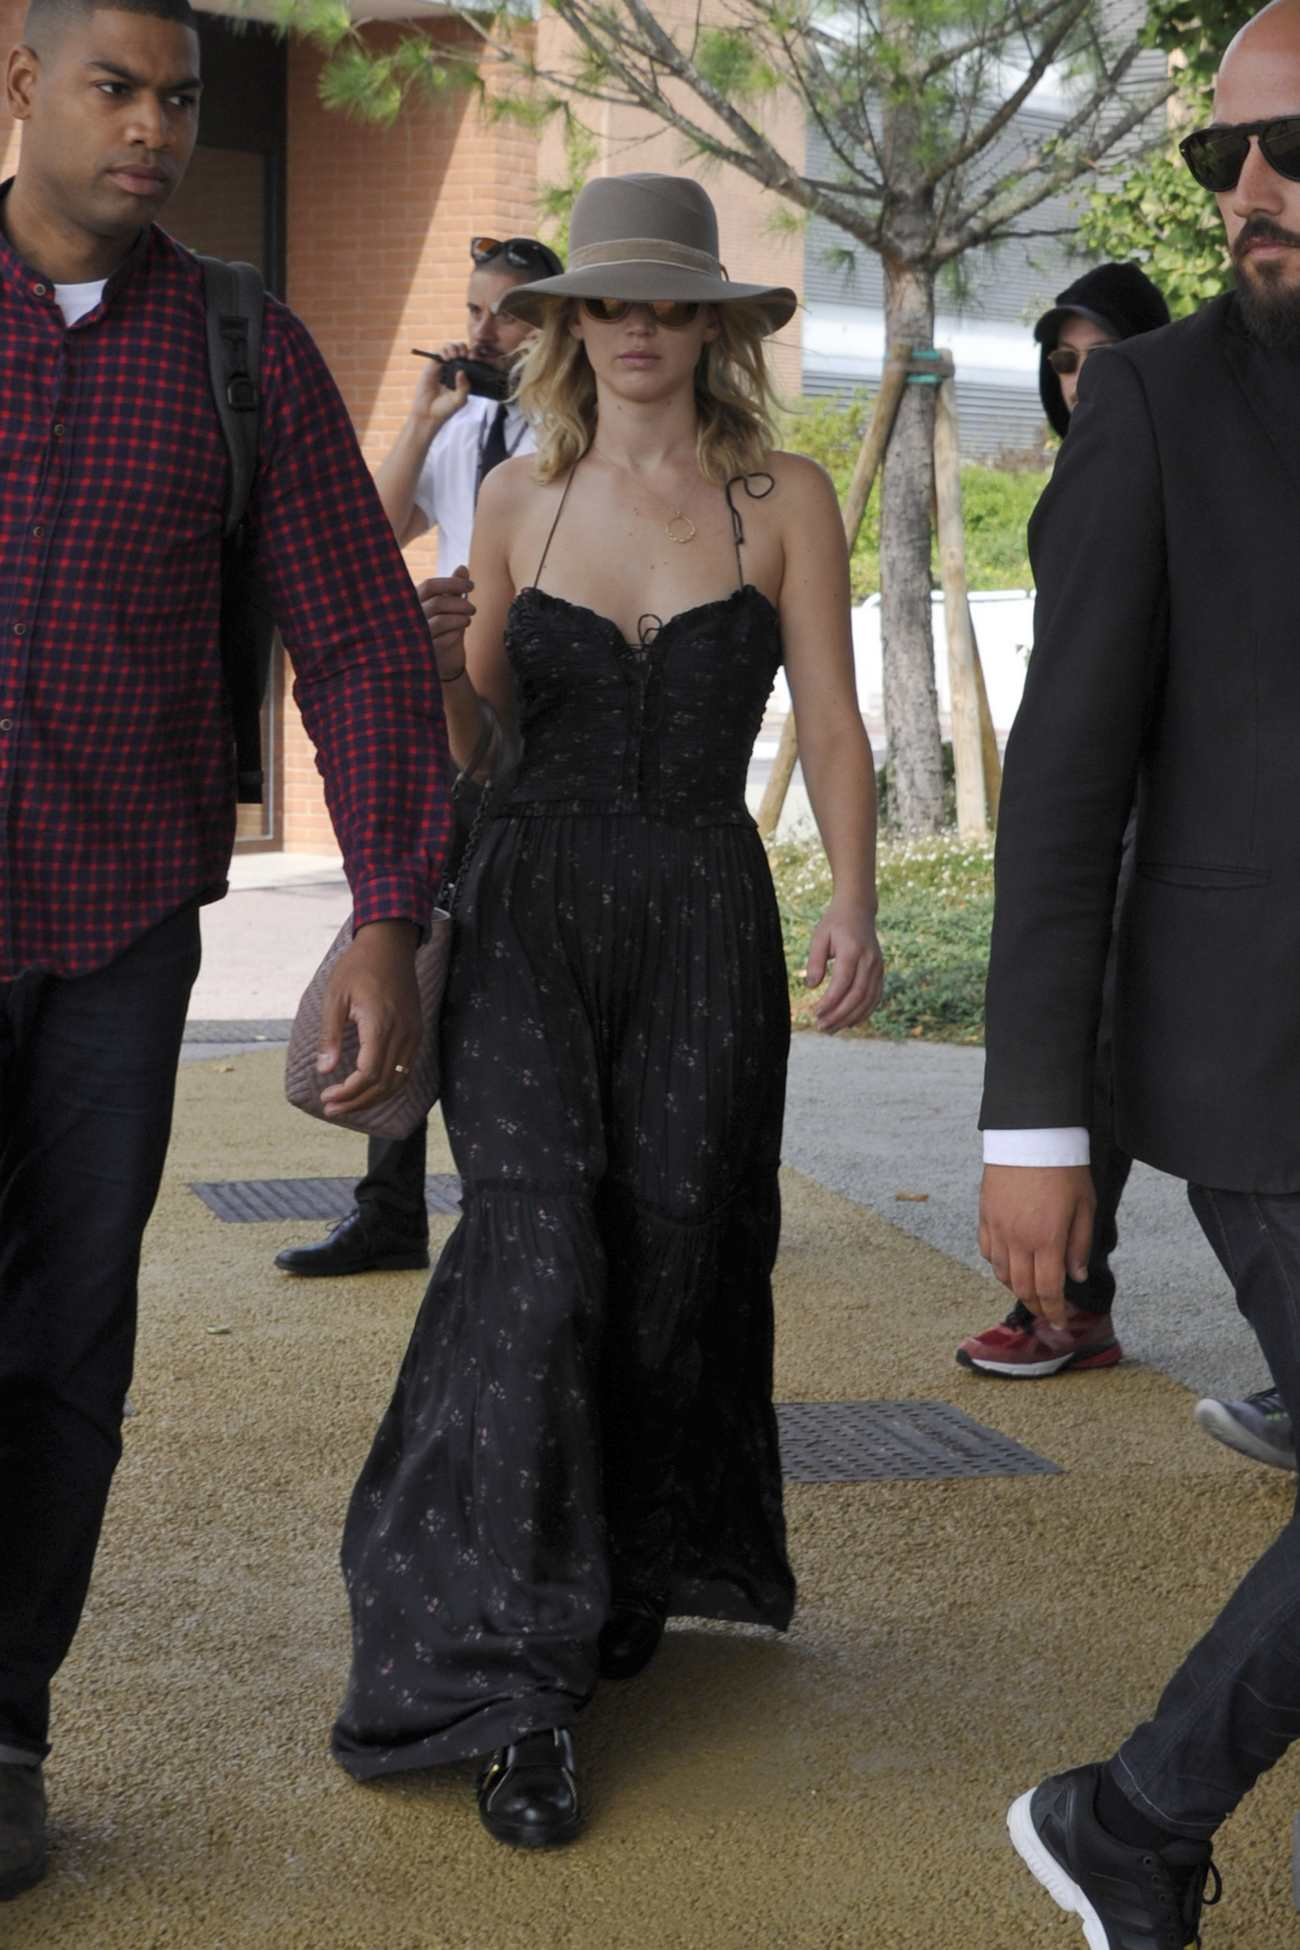 http://jenniferlawrencedaily.com/gallery/albums/userpics/10001/Arrives_at_Venice_Airport_for_the_74th_Venice_Festival_in_Italy_-_September_2-05.jpg